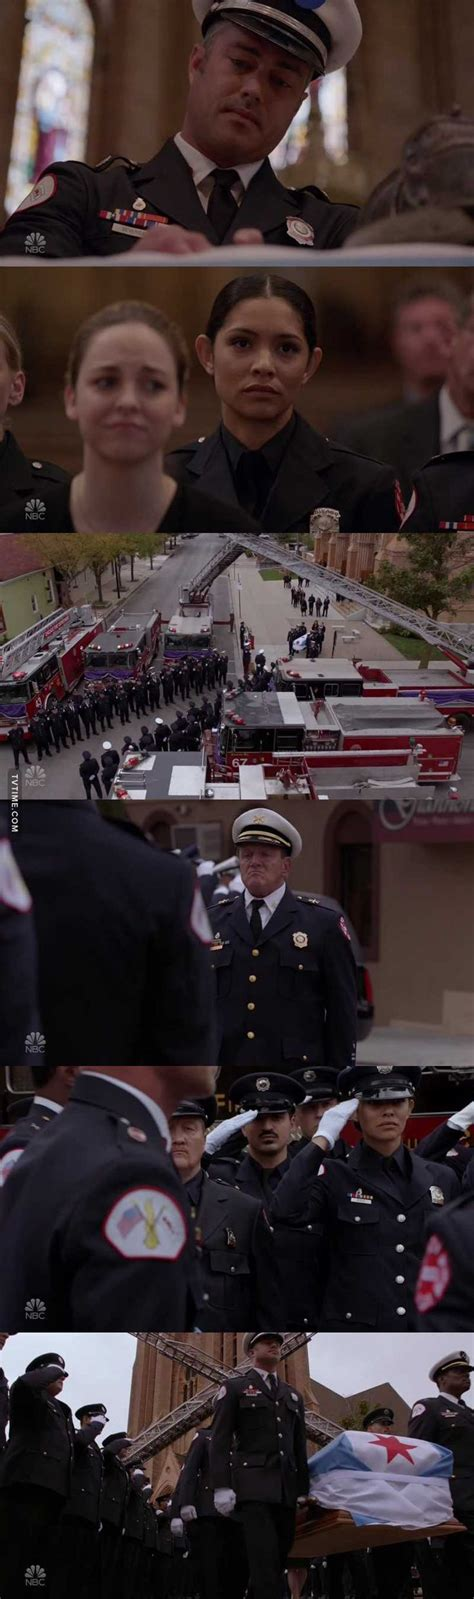 Severide - 7x07 | Chicago fire, Taylor kinney, Chicago